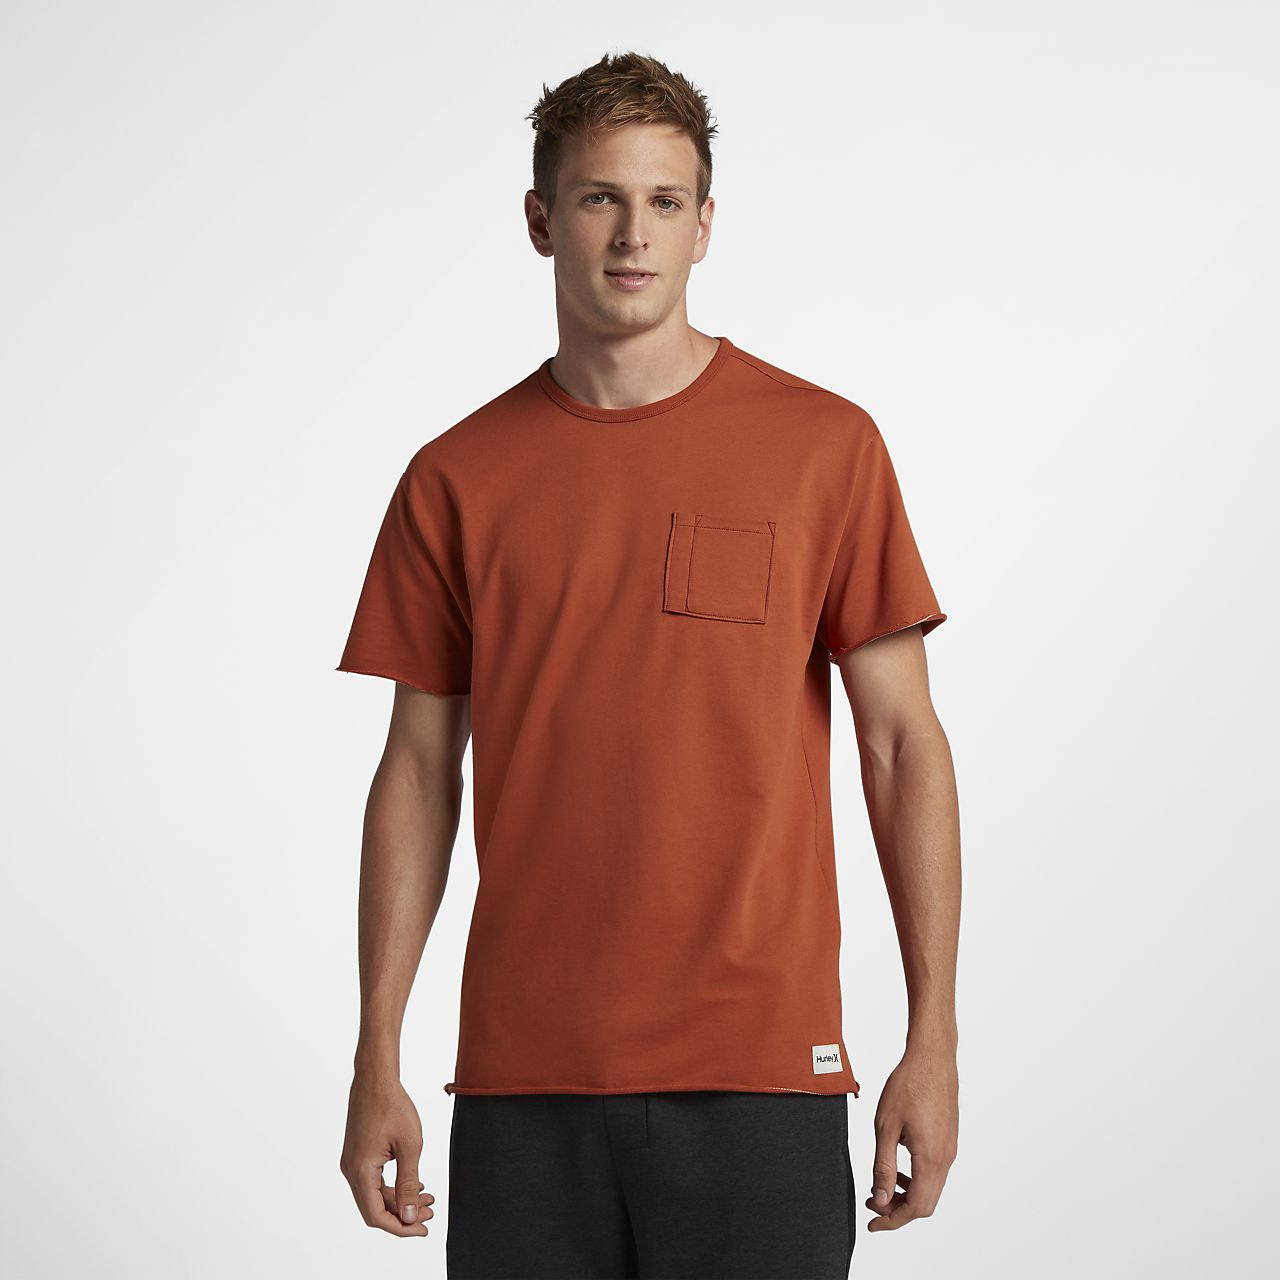 Hurley L7 Pocket Crew Men's T-Shirt